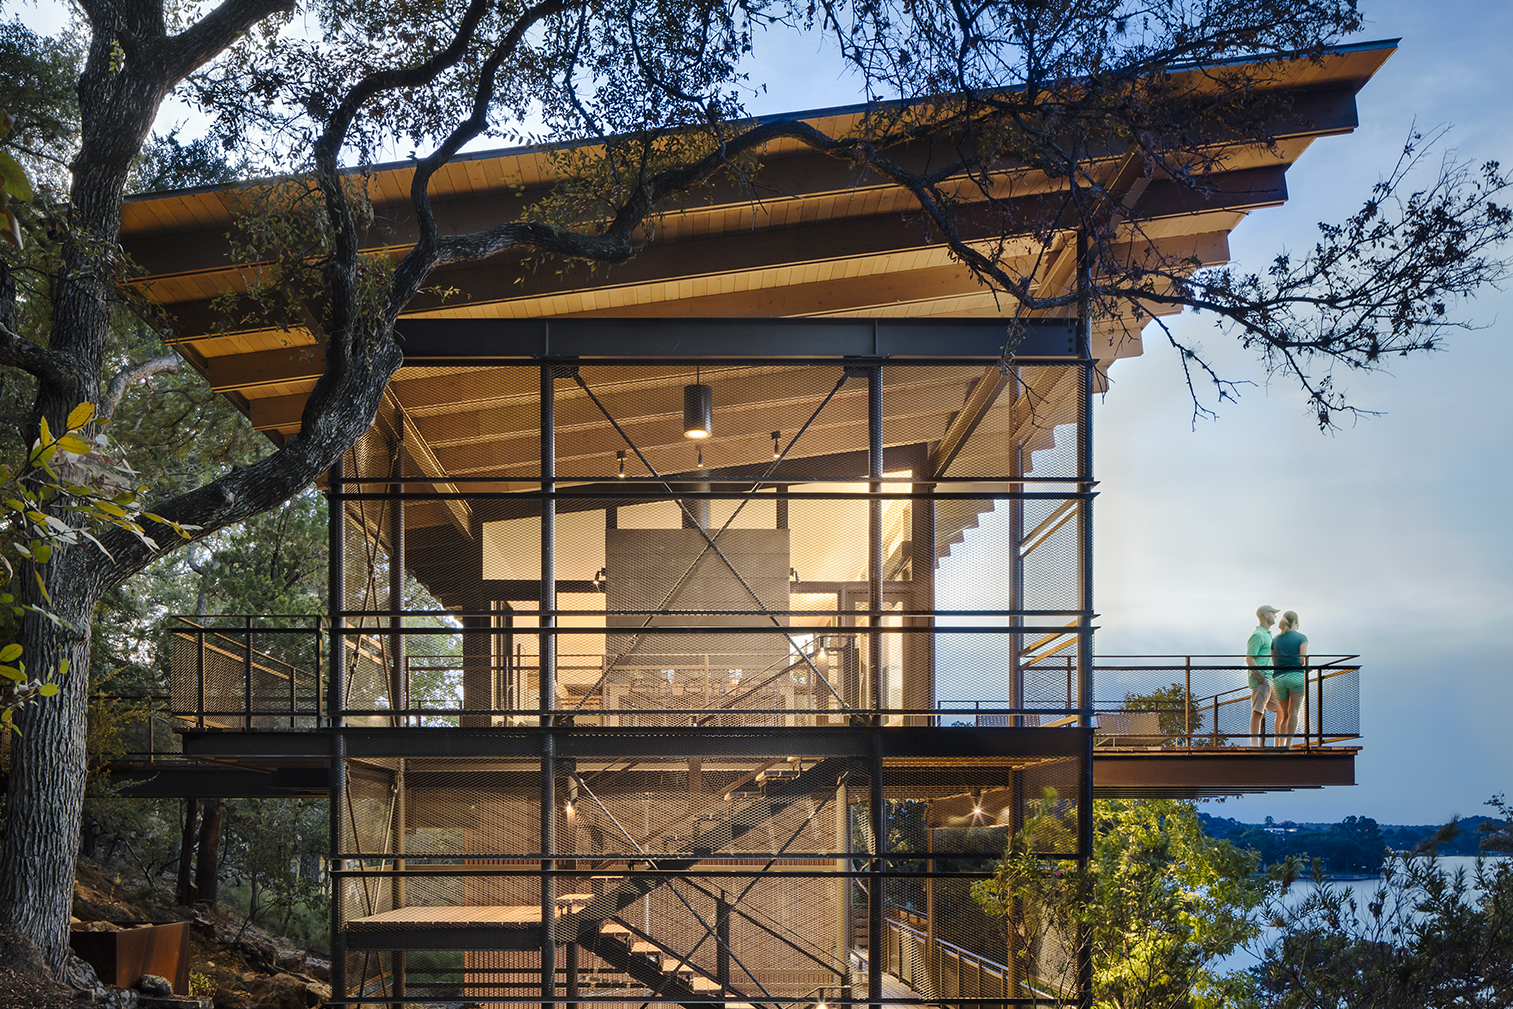 Blue Lake Retreat Architect Magazine LakeFlato Architects Marble Falls Texas Single